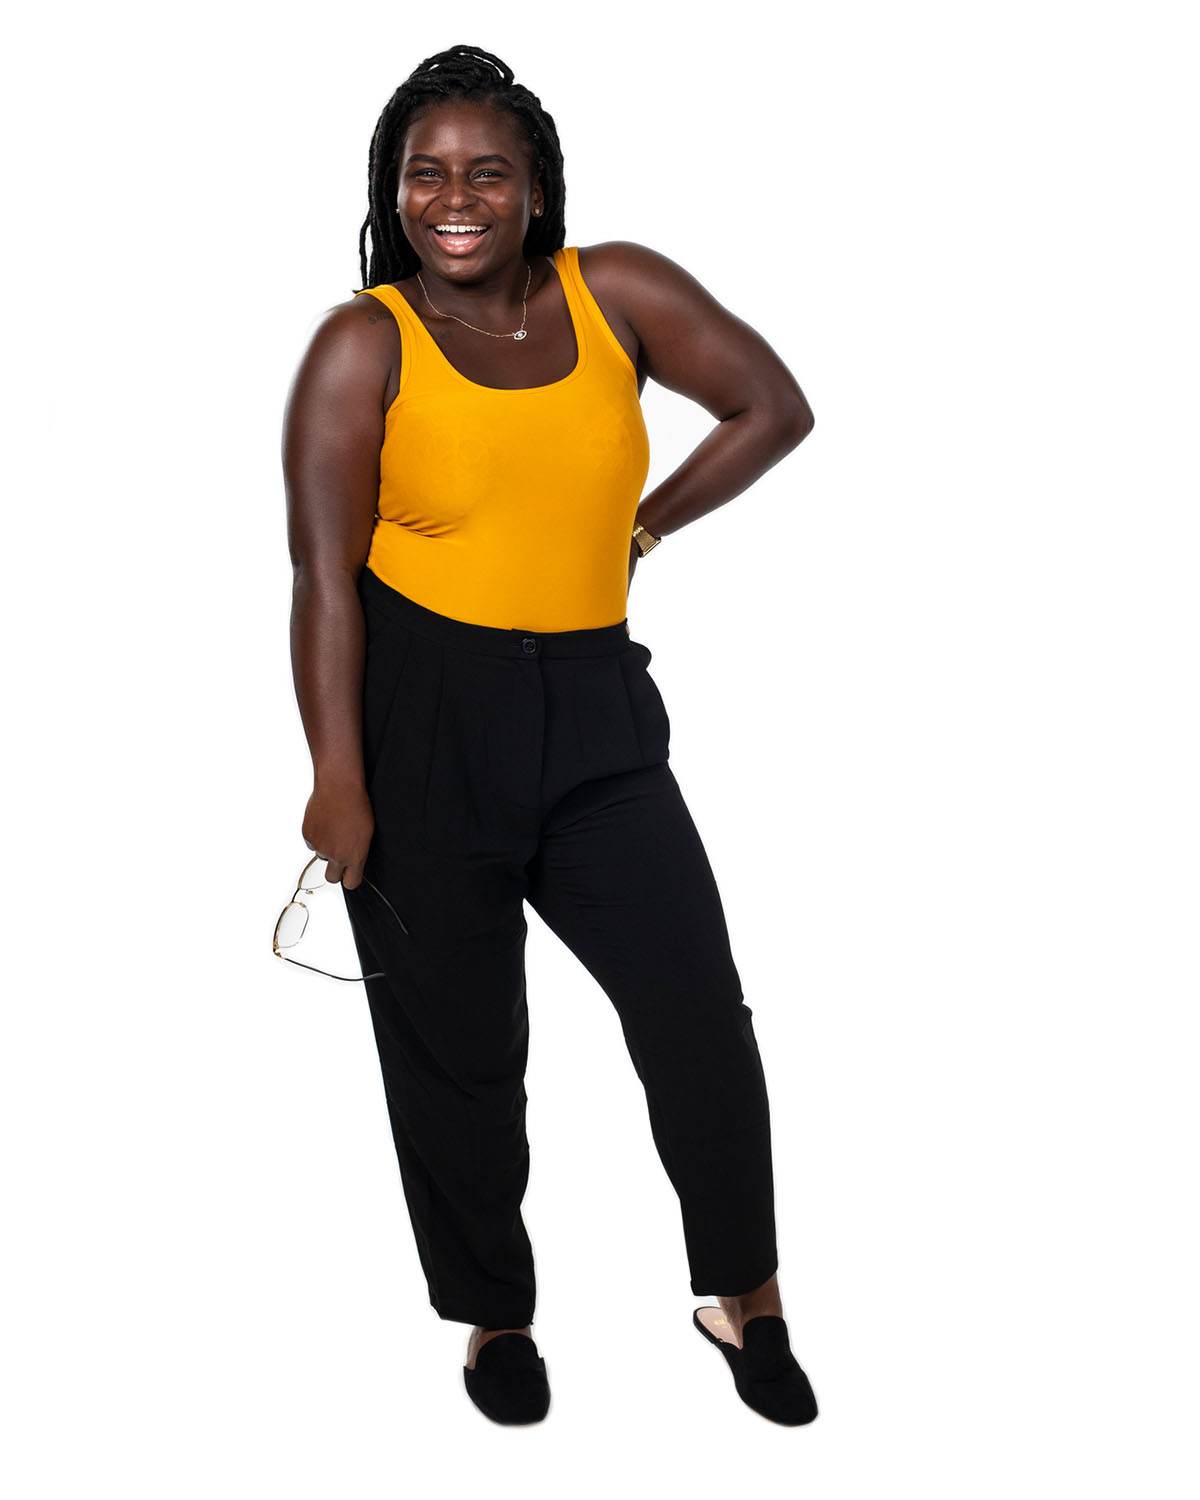 A woman in an orange tank top and black pants holds her glasses with one hand on her hip as she smiles.